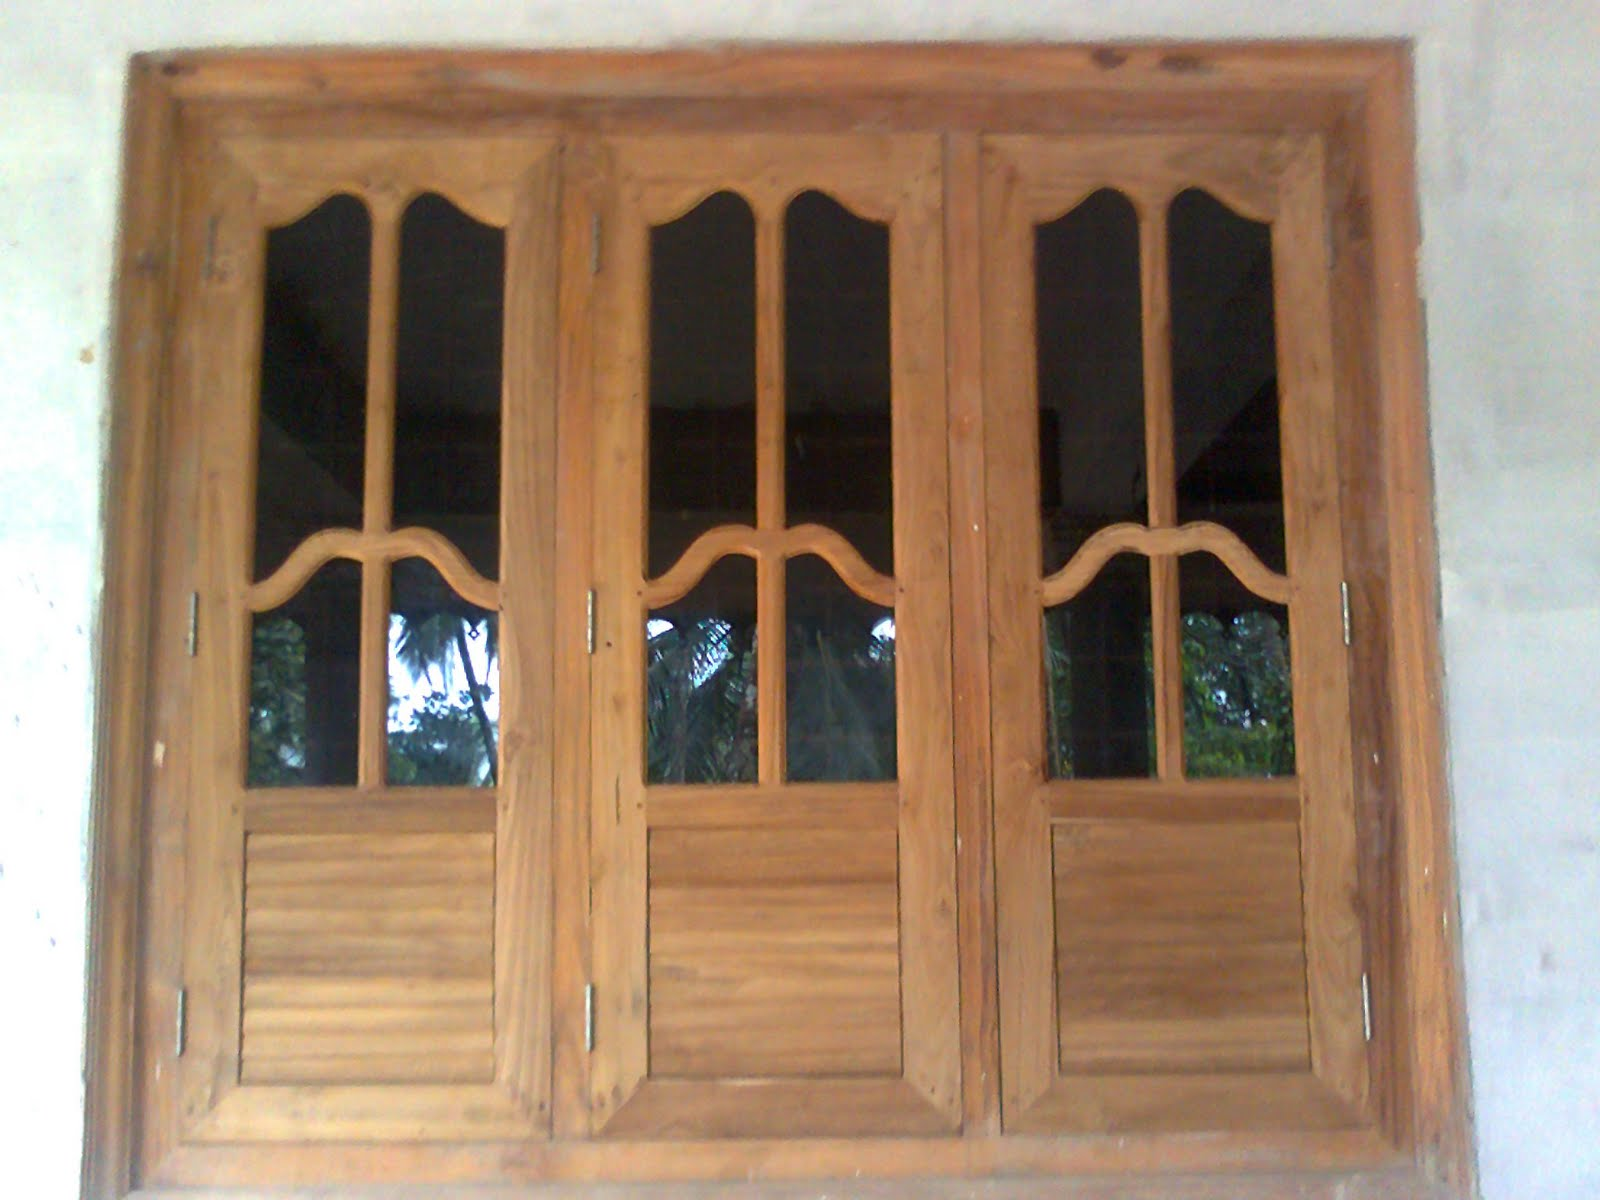 Bavas wood works wooden window doors simple designs for Widows and doors